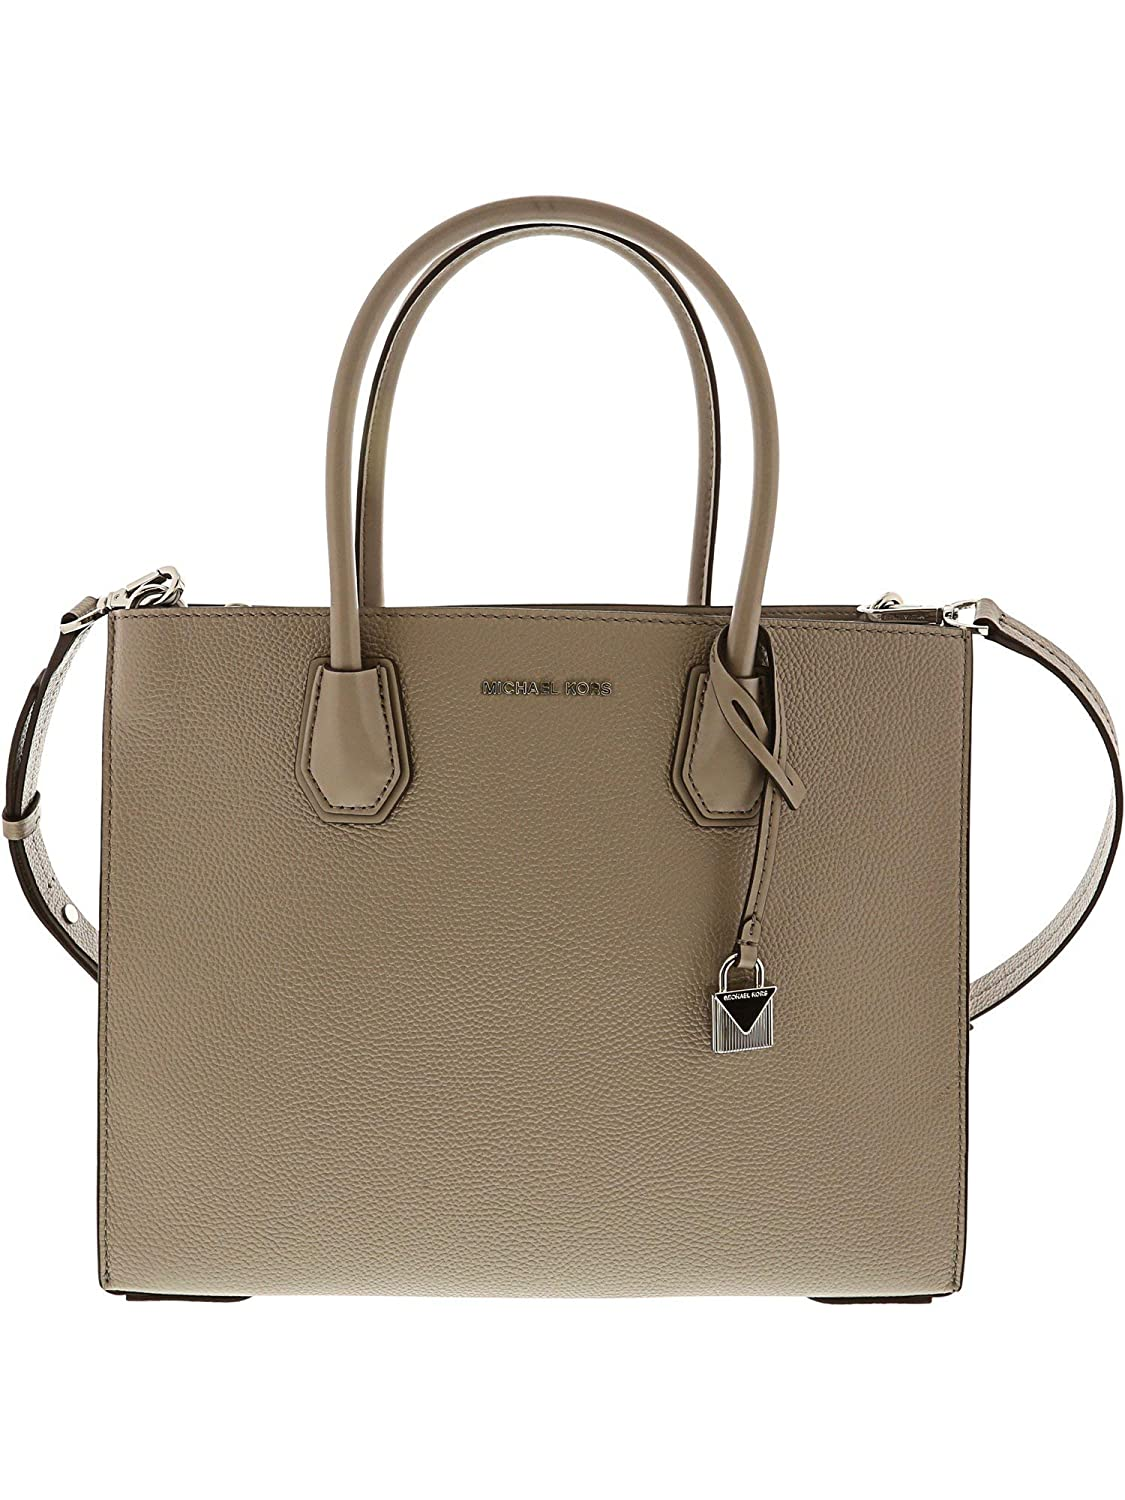 09c70b83d1580 Michael Kors Mercer Large Pebbled Leather Tote - Pearl Grey  Handbags   Amazon.com